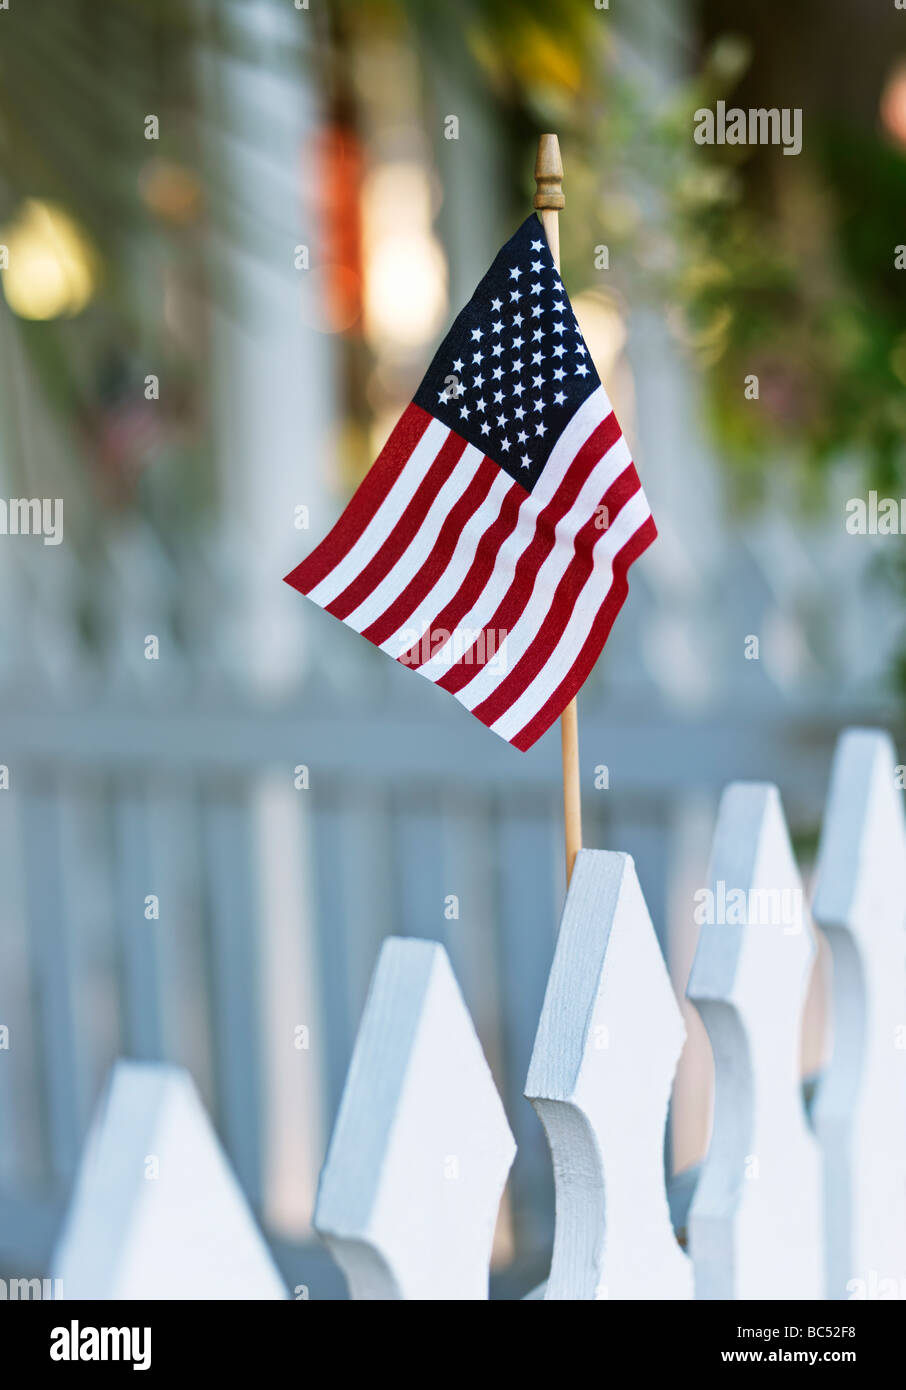 American flag on a picket fence - Stock Image